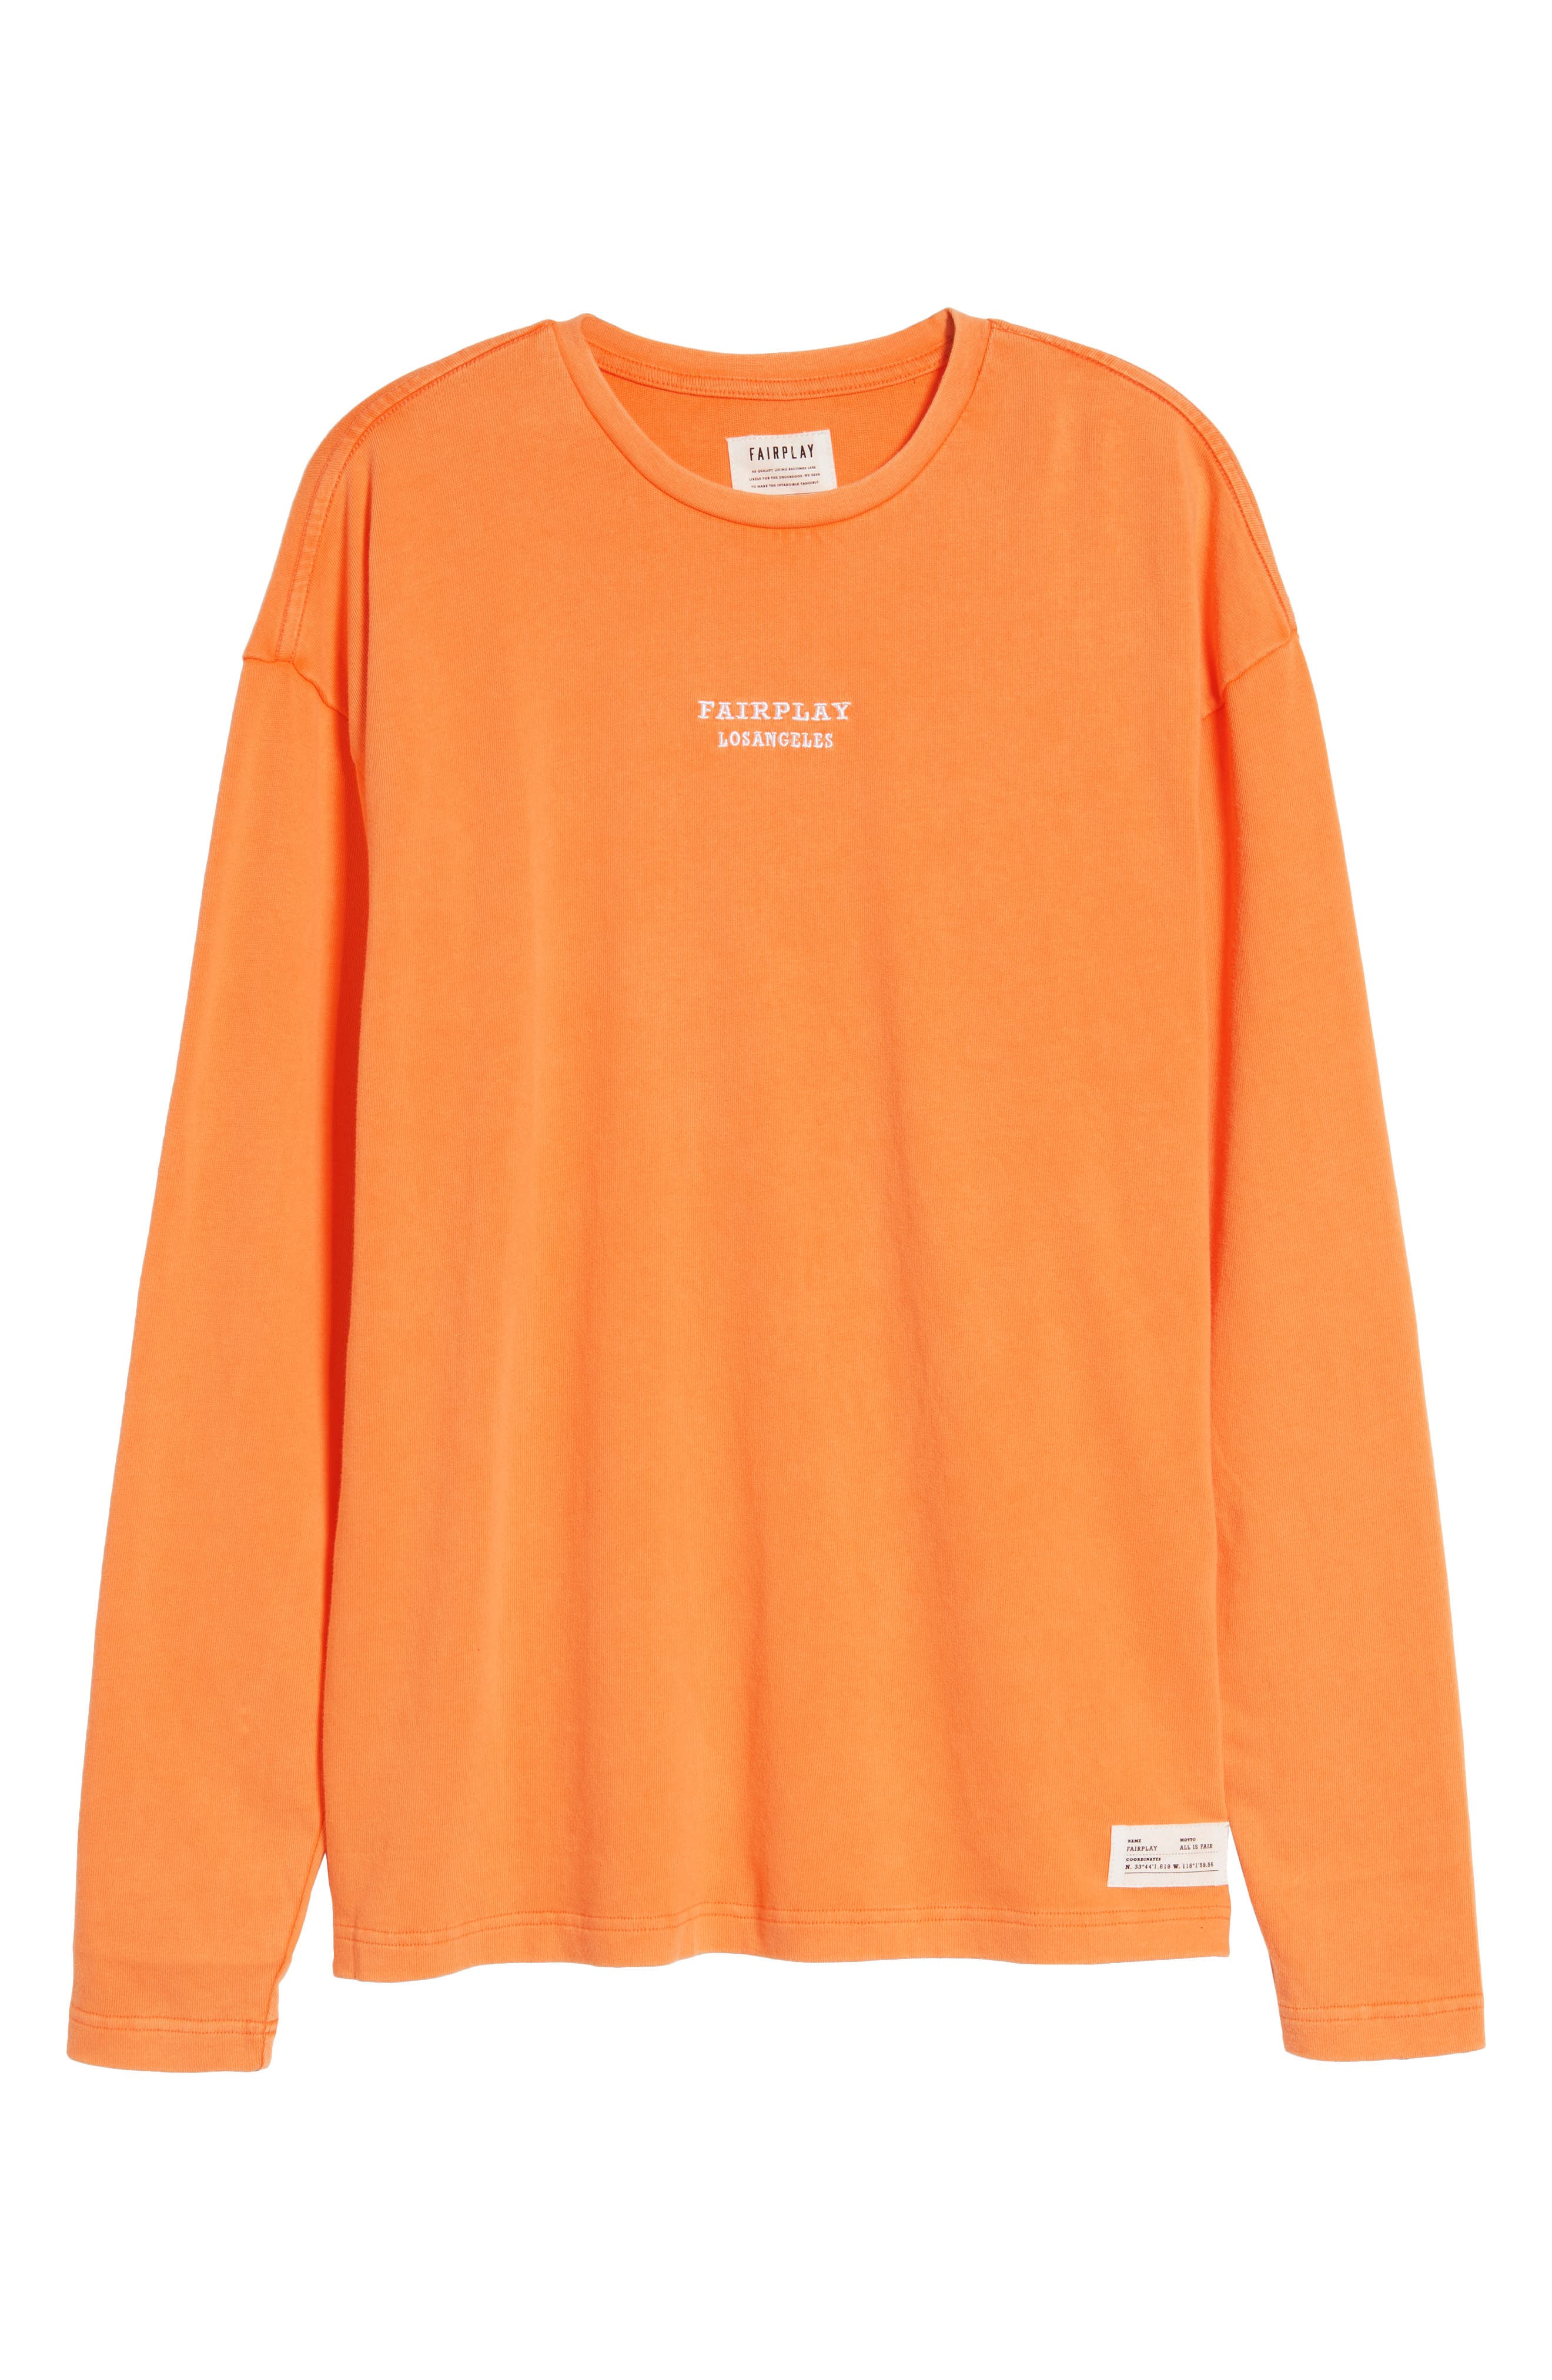 Anderson Sweatshirt,                             Alternate thumbnail 6, color,                             Orange